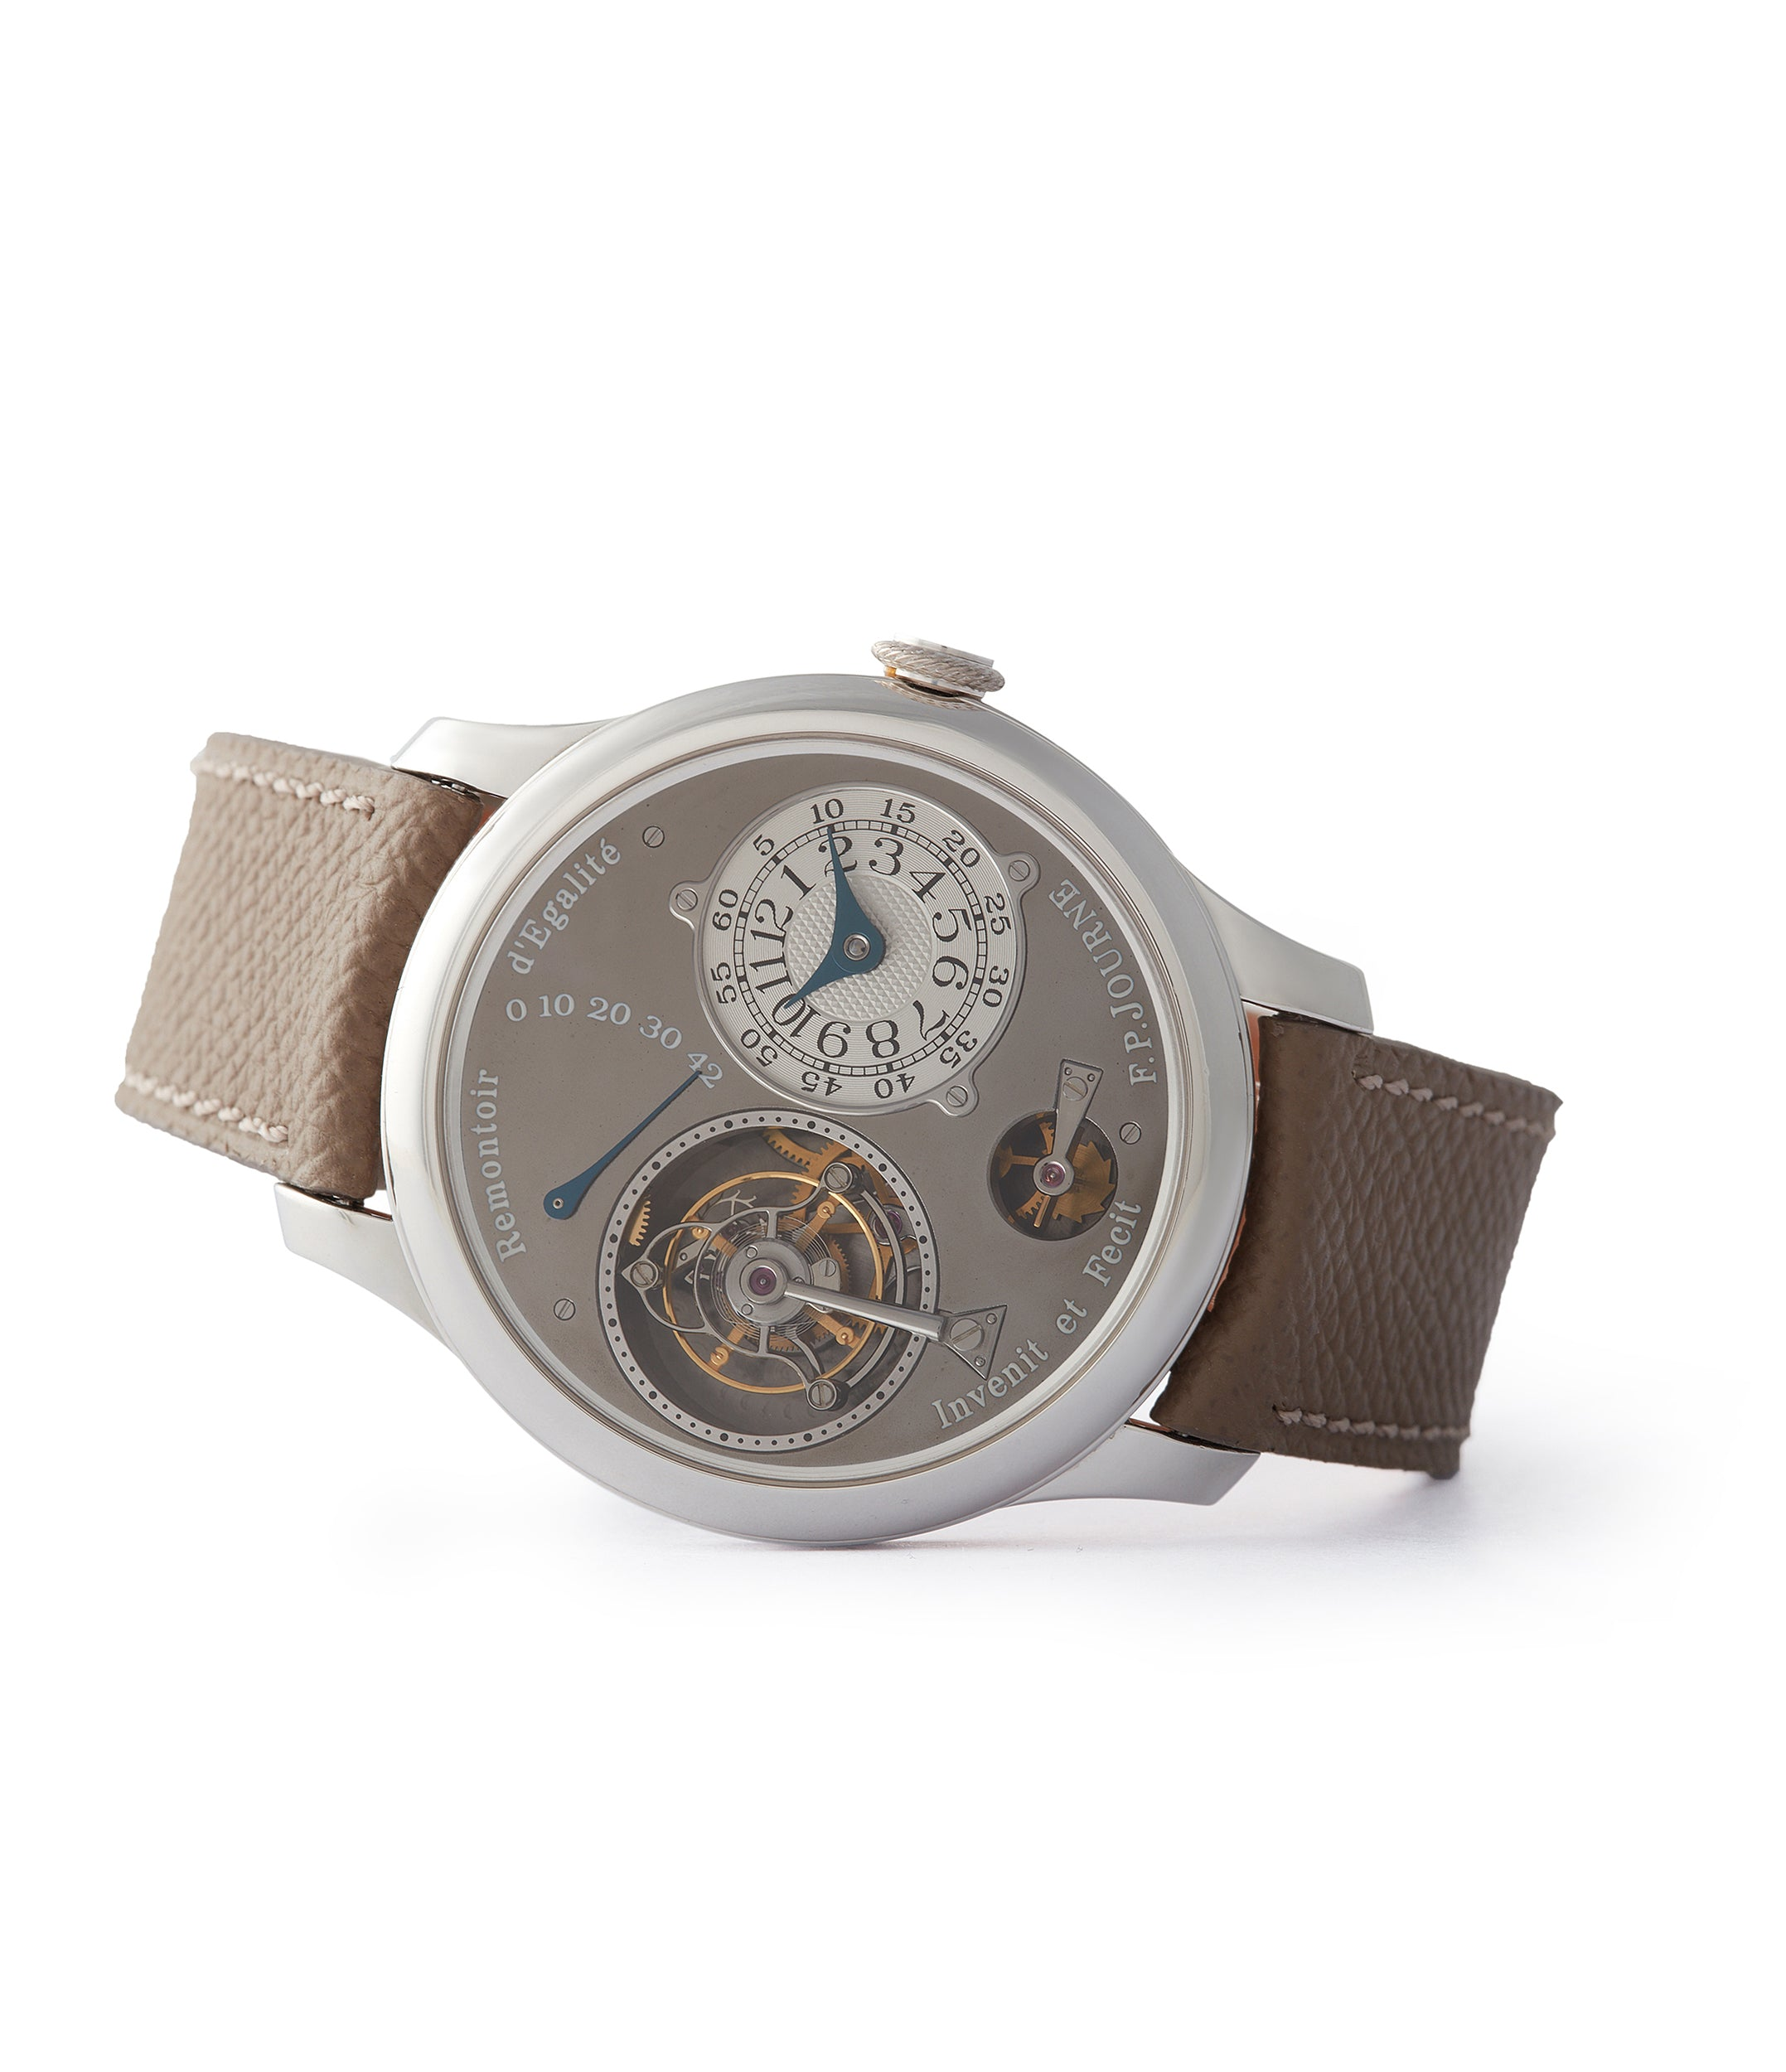 side-shot grey rhutenium dial F. P. Journe Tourbillon Remontoire Souverain brass movement pre-owned watch at A Collected Man London specialist independent watchmakers